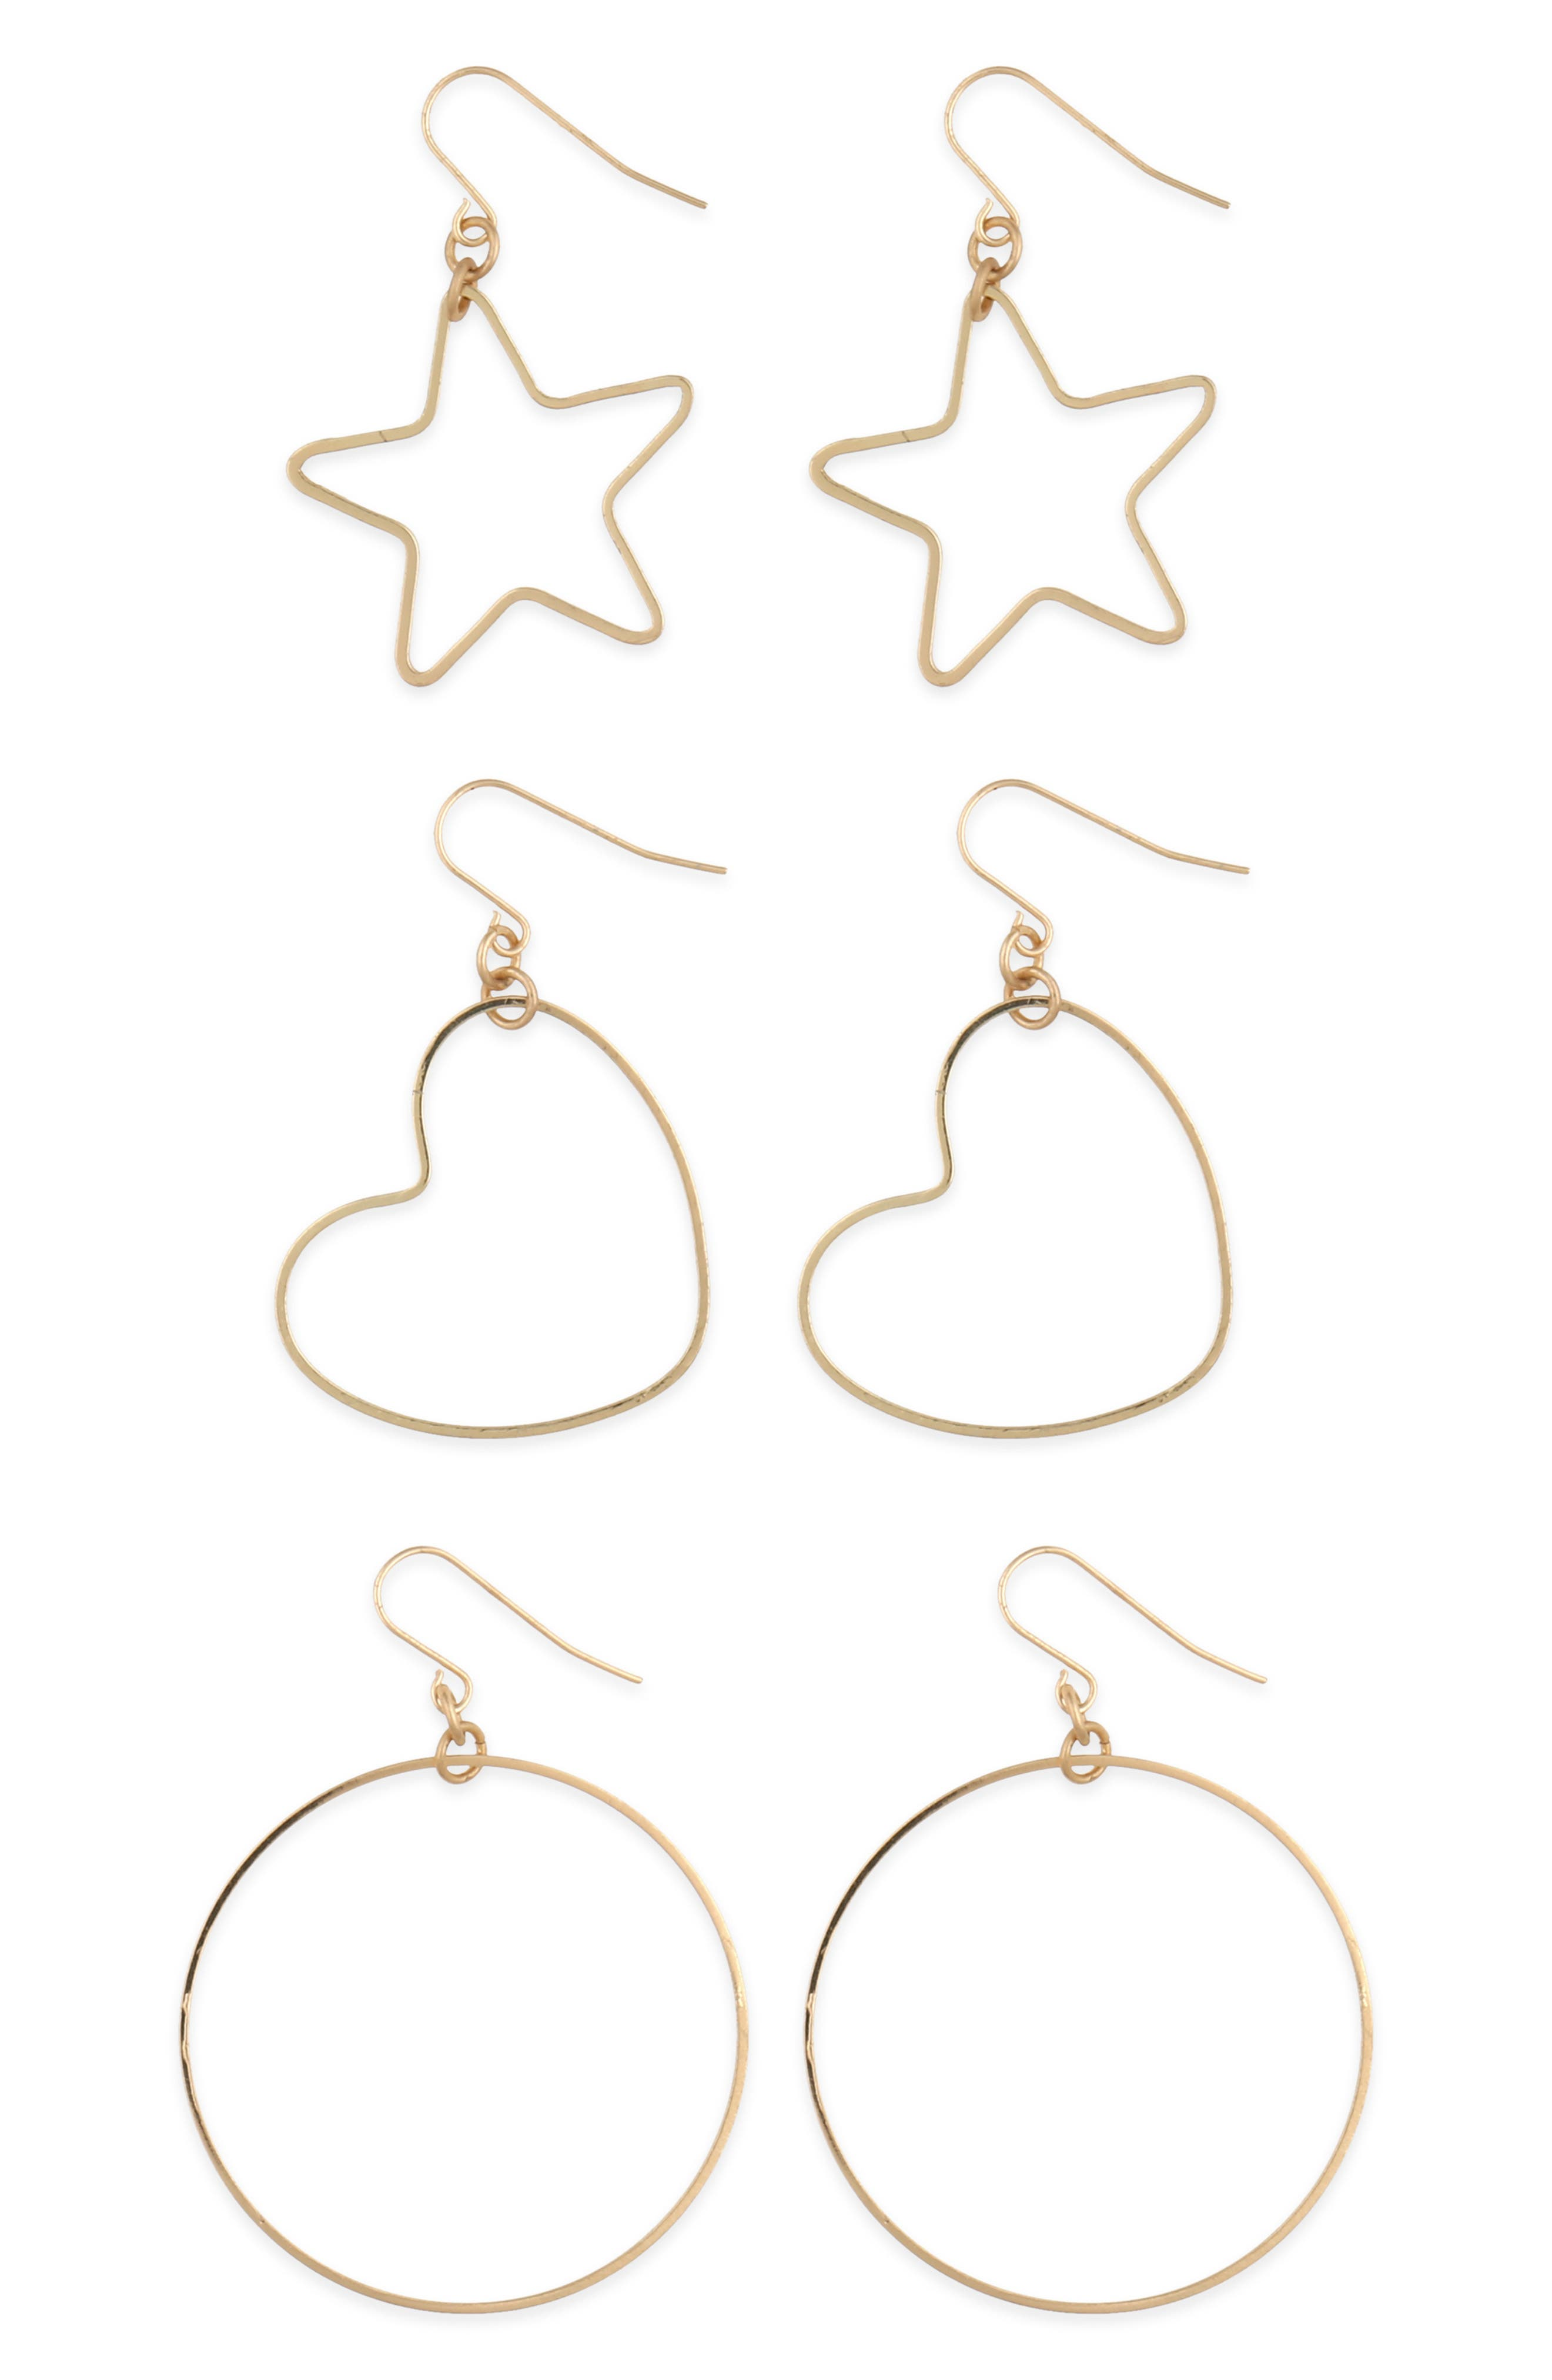 Totally Meow 3-Pack Hoop Earrings,                             Main thumbnail 1, color,                             GOLD